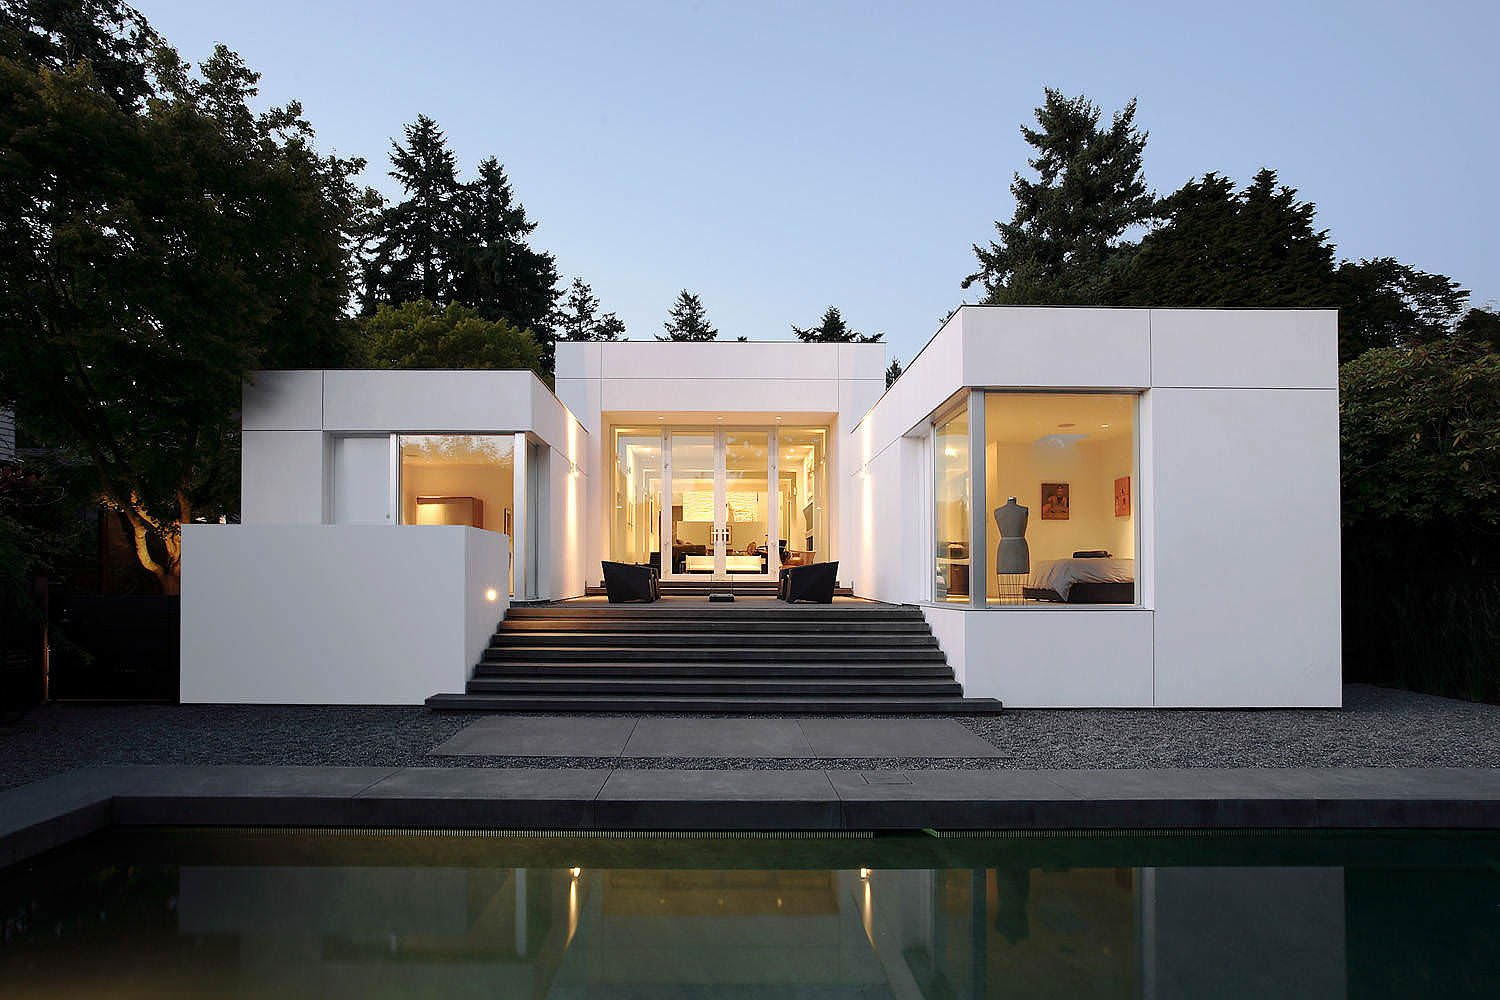 Medina Mid Century Modern Home By Skb Architects on mid century modern homes portland